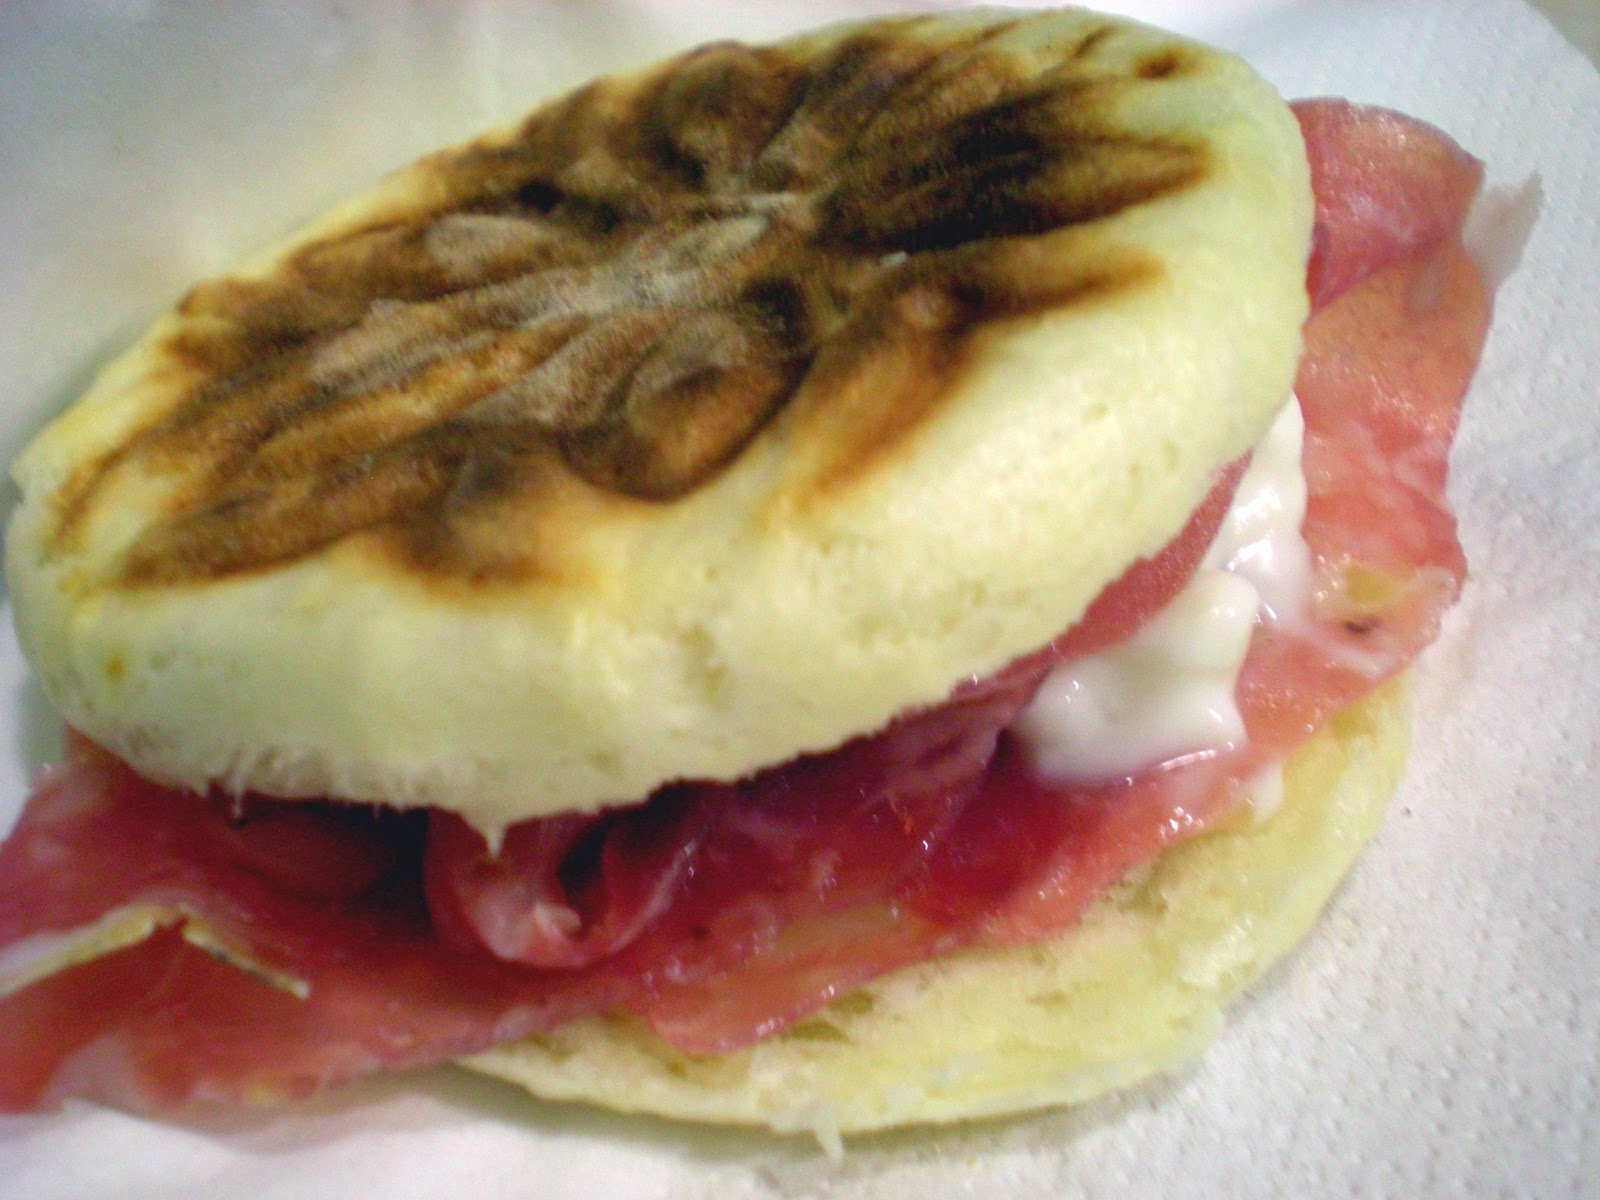 un fragrante piccolo panino